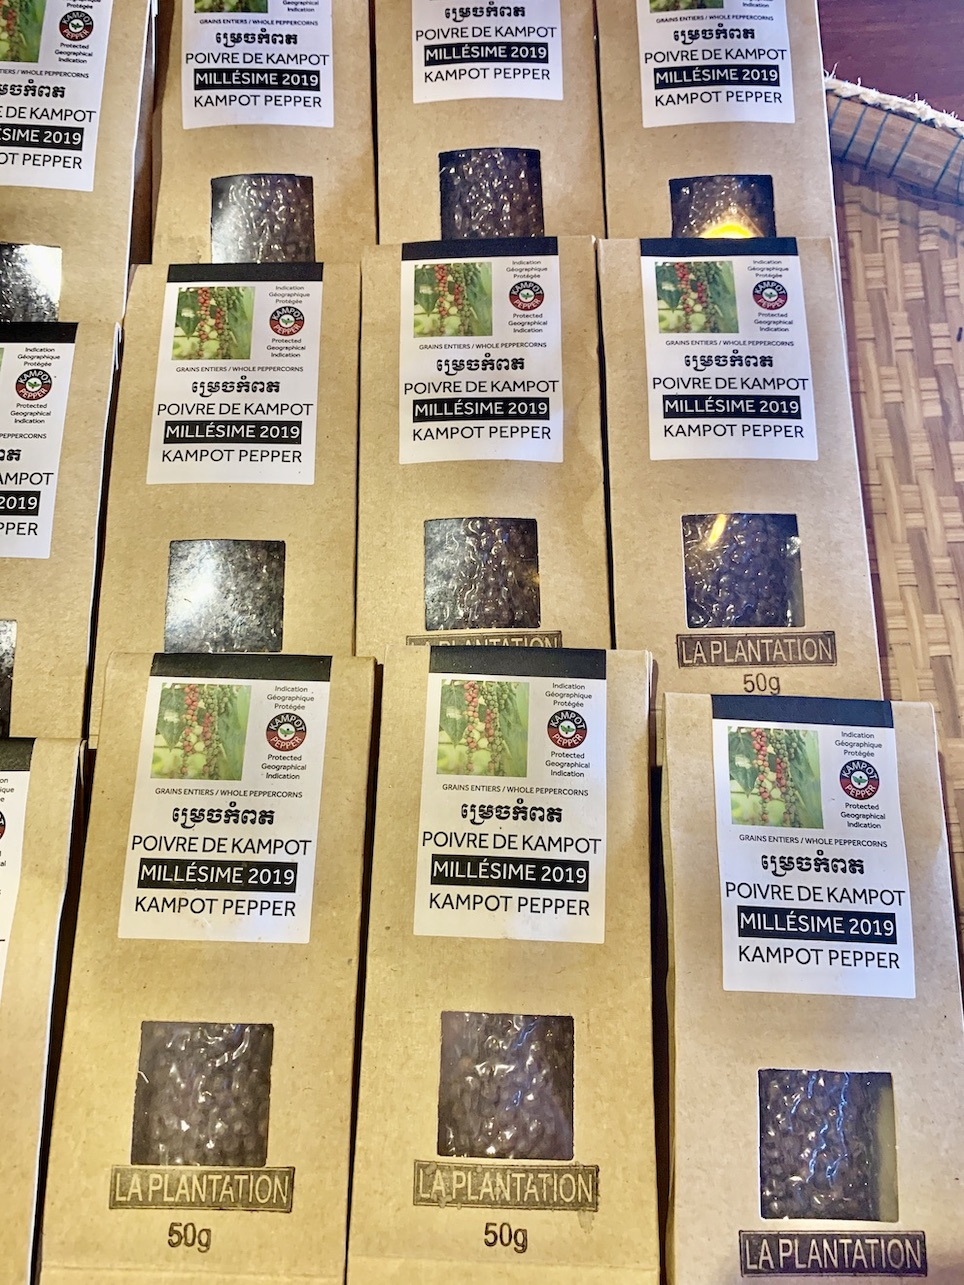 Buy Kampot Pepper La Plantation Kampot Cambodia.